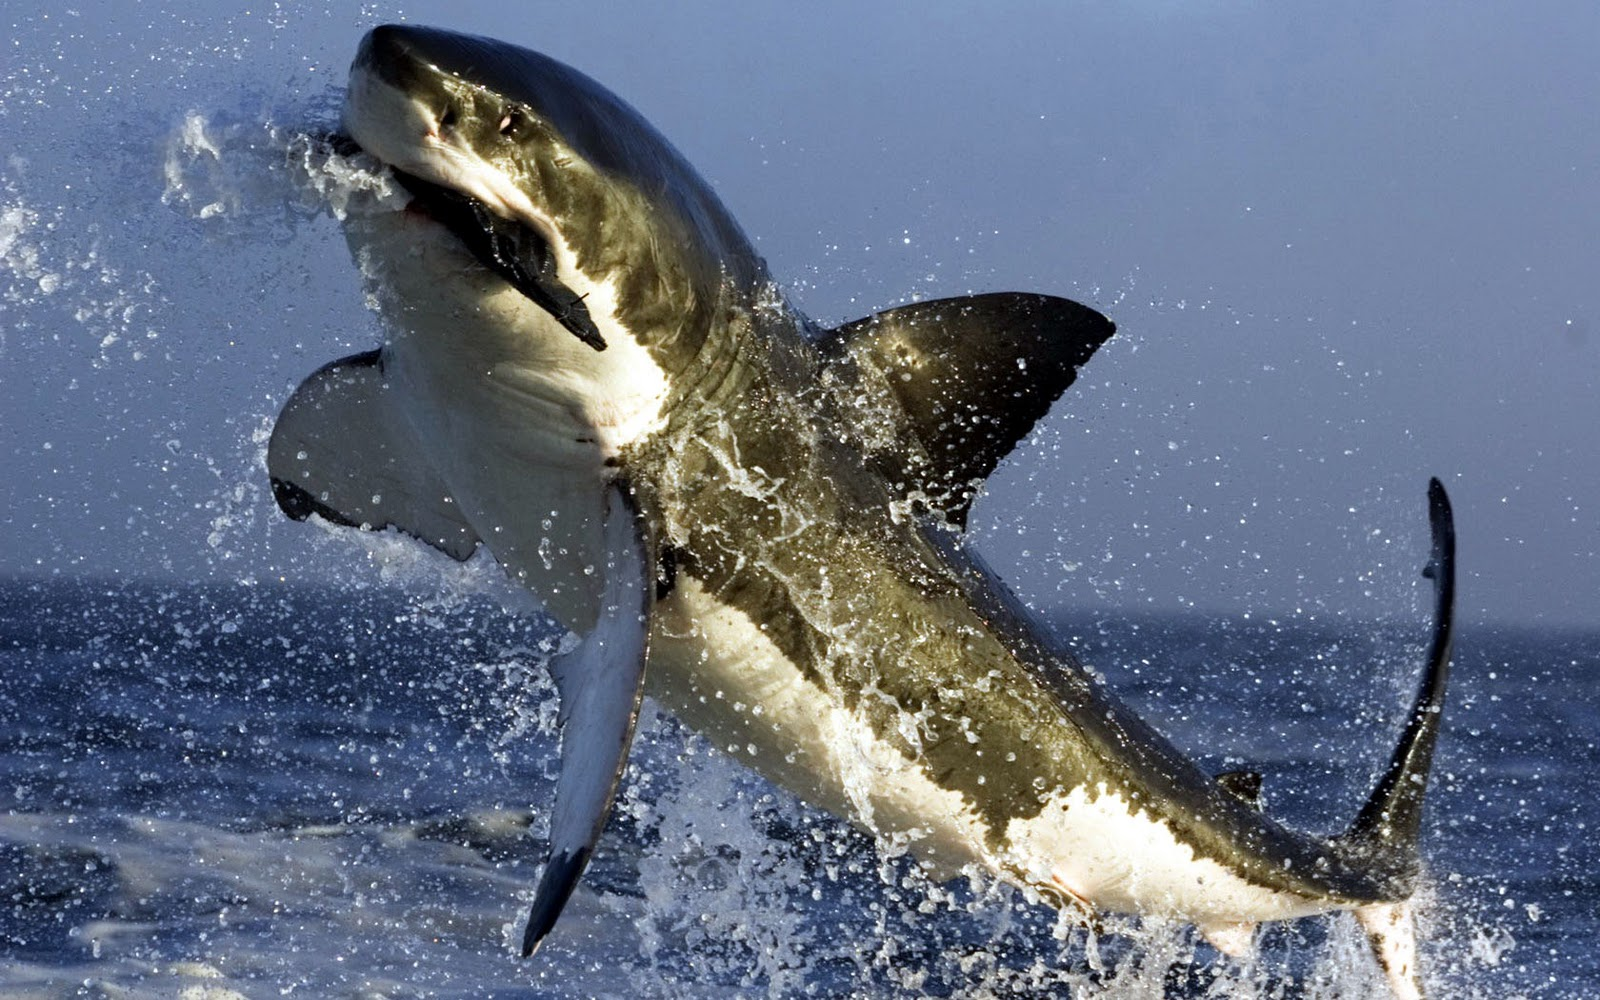 Great white shark attack pictures